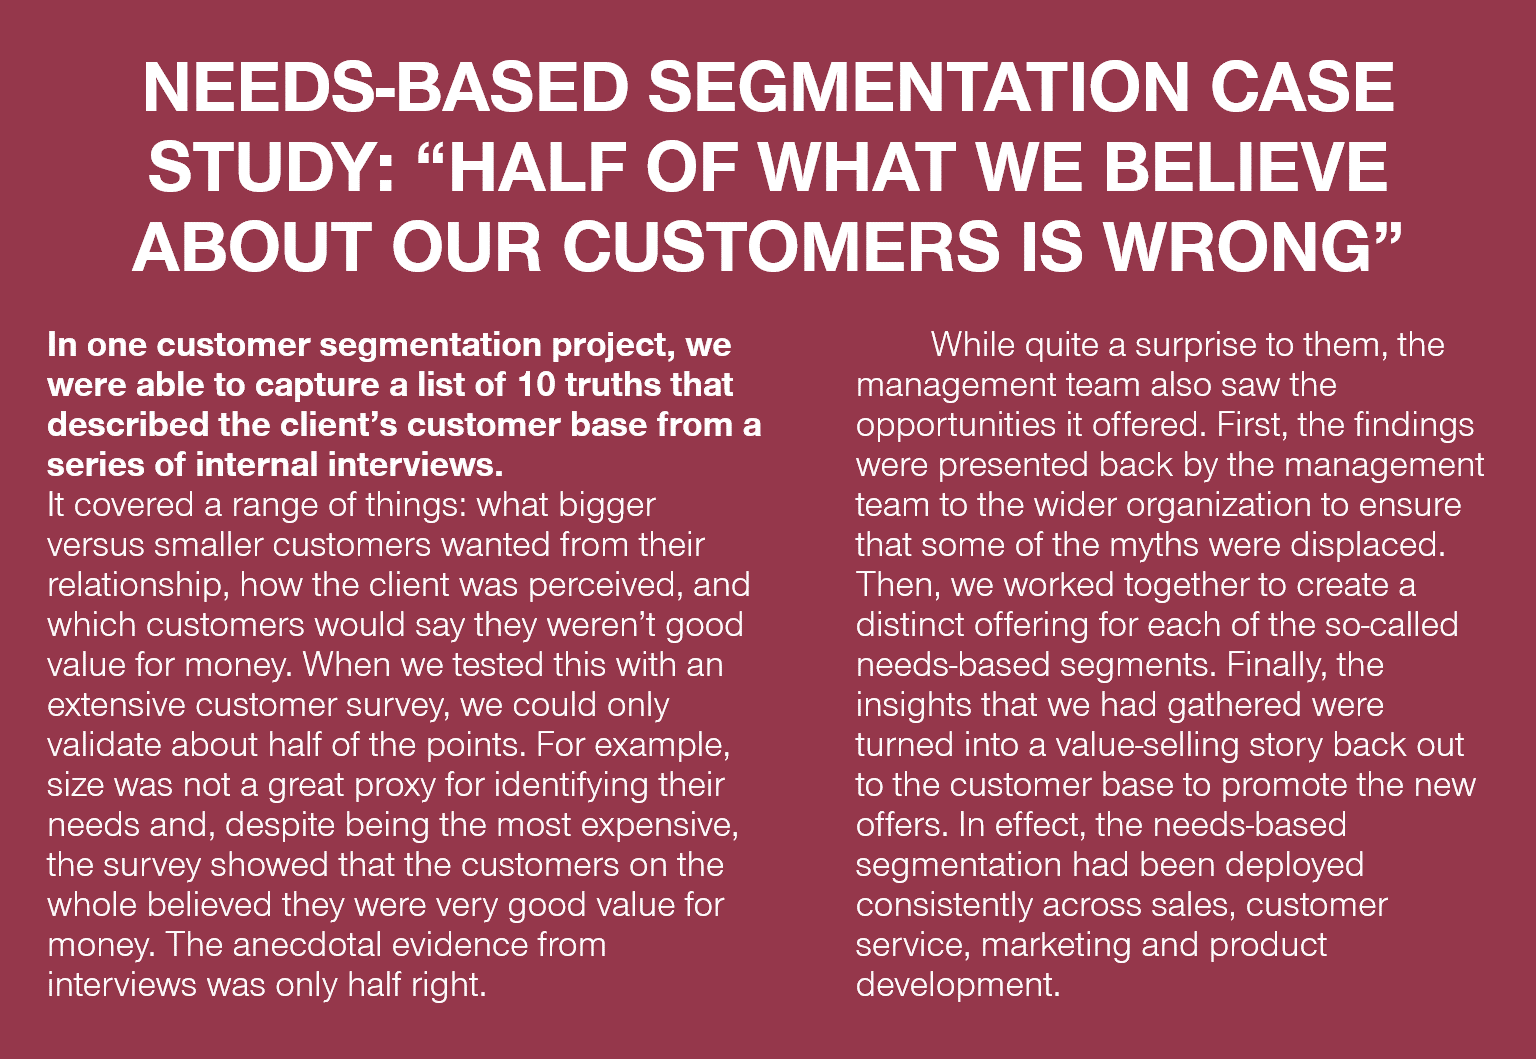 "NEEDS-BASED SEGMENTATION CASE STUDY: ""HALF OF WHAT WE BELIEVE ABOUT OUR CUSTOMERS IS WRONG"""